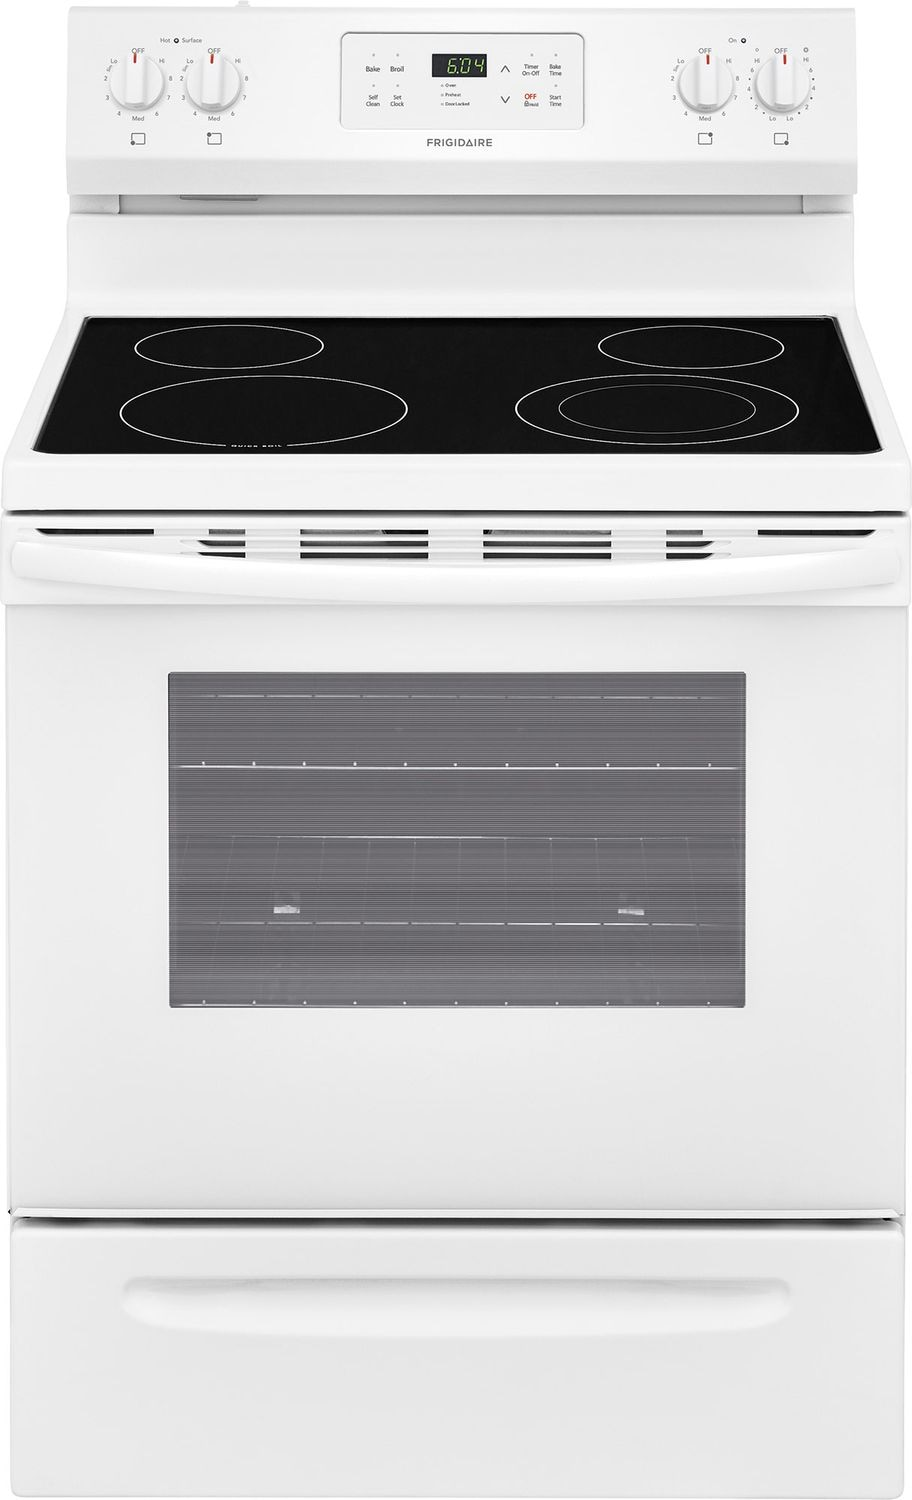 Frigidaire White Freestanding Electric Range (5.3 Cu. Ft.) - CFEF3055TW